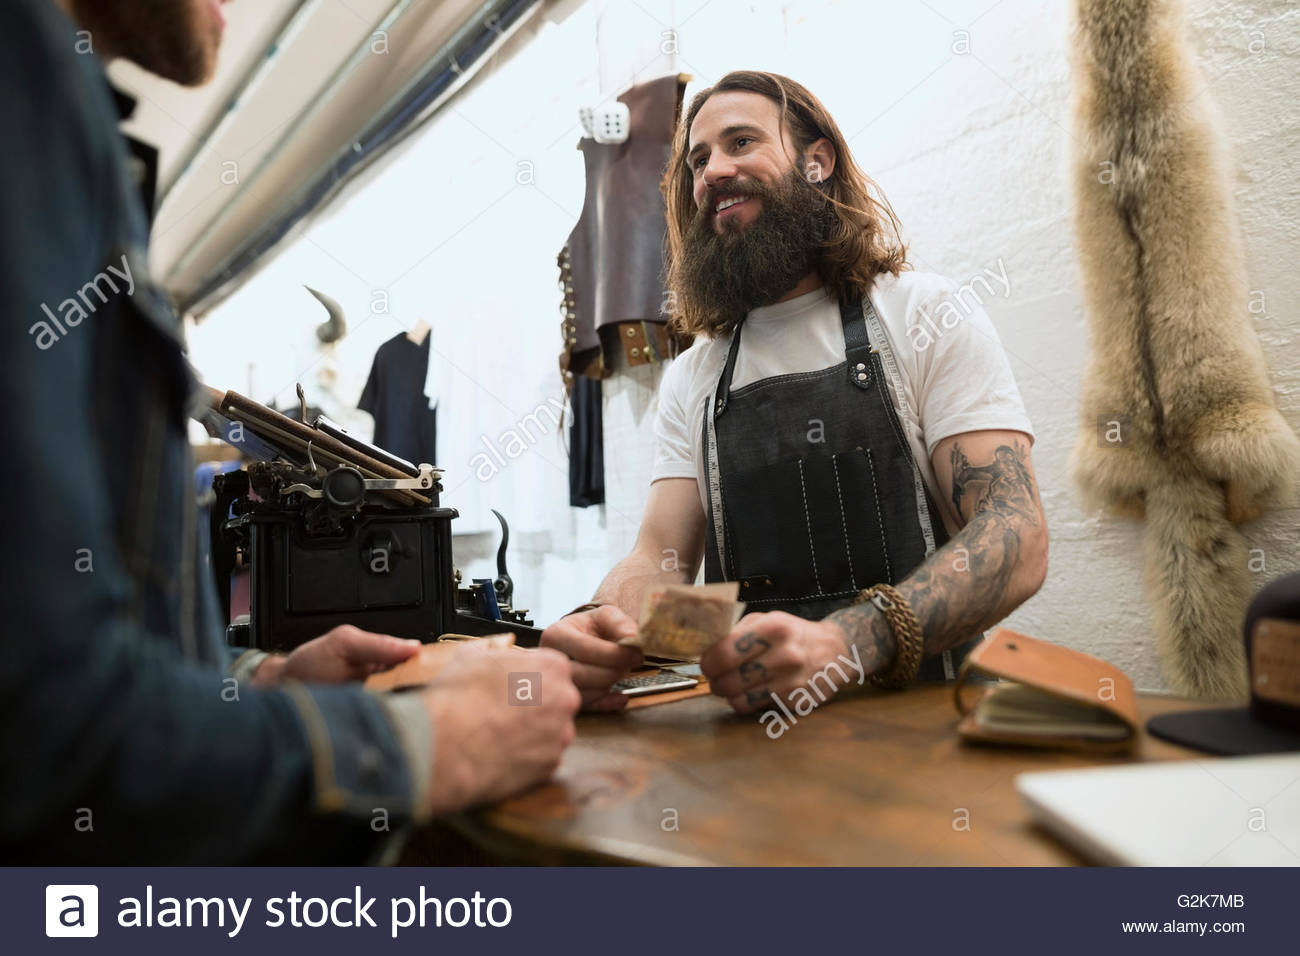 Customer paying leather shop owner - Stock Image